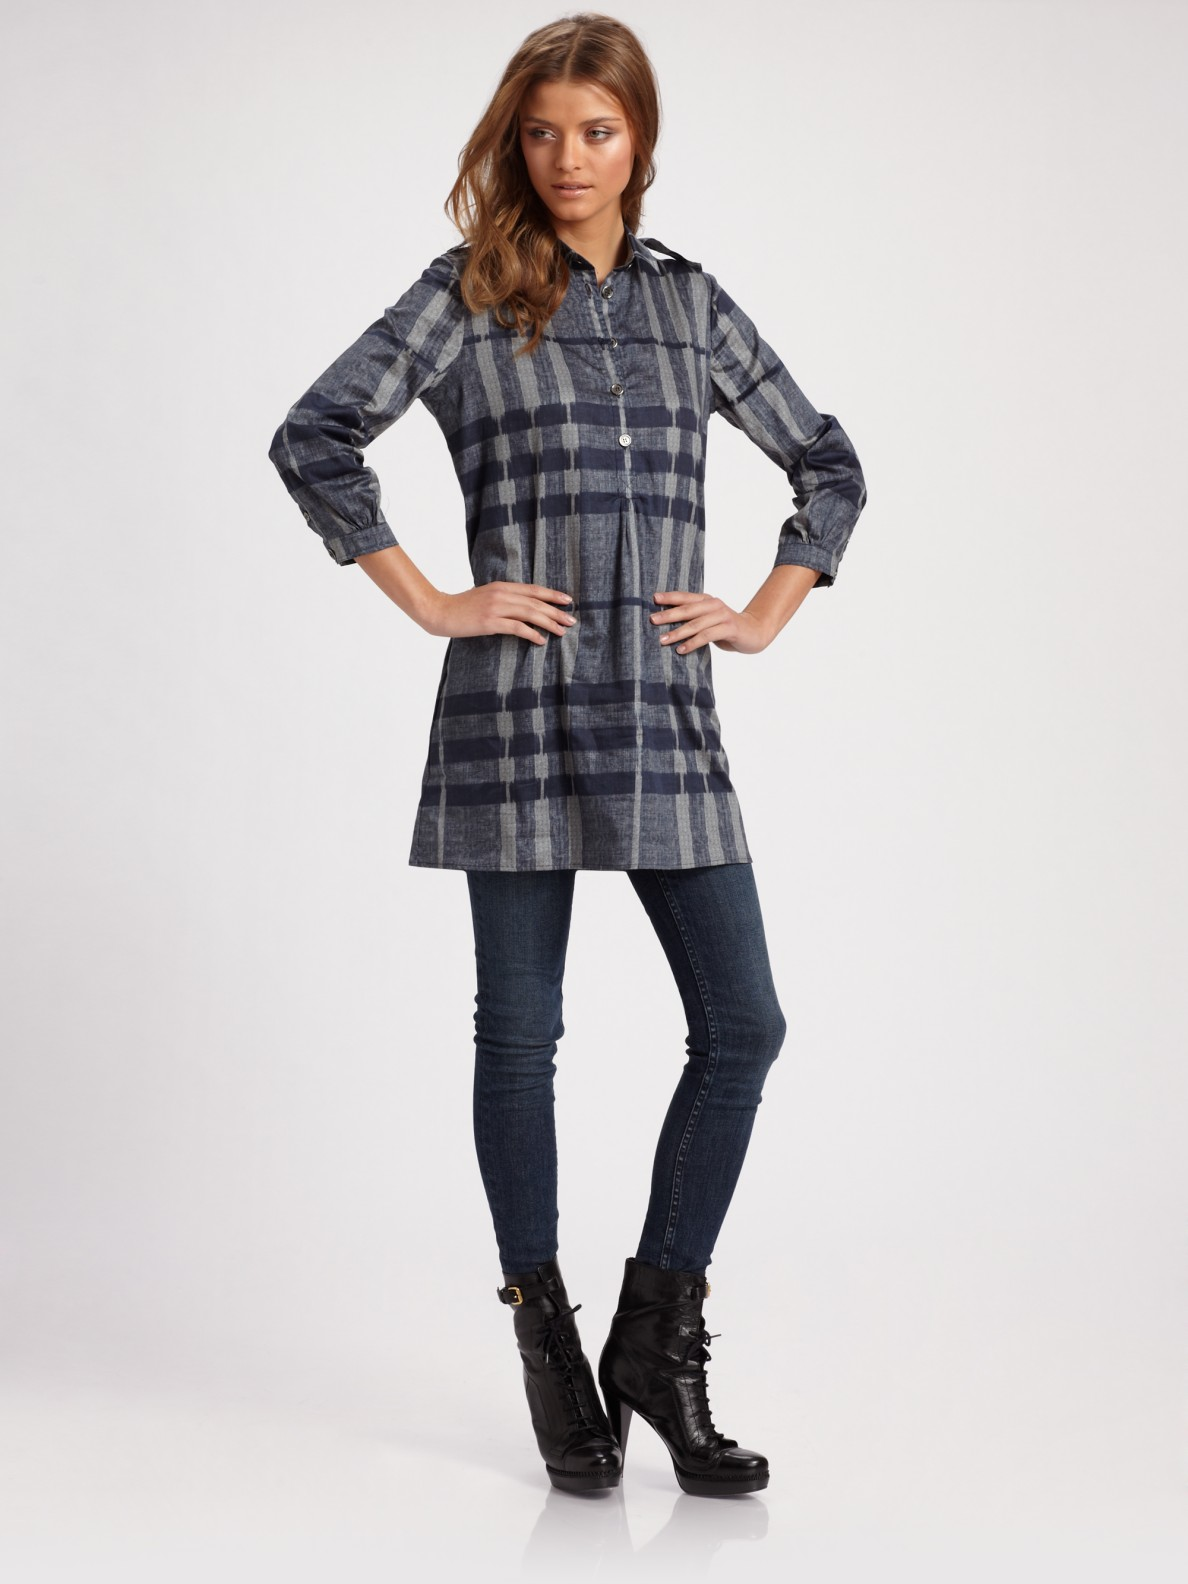 c9047c5aad4 Burberry Brit Check Tunic Top in Blue - Lyst